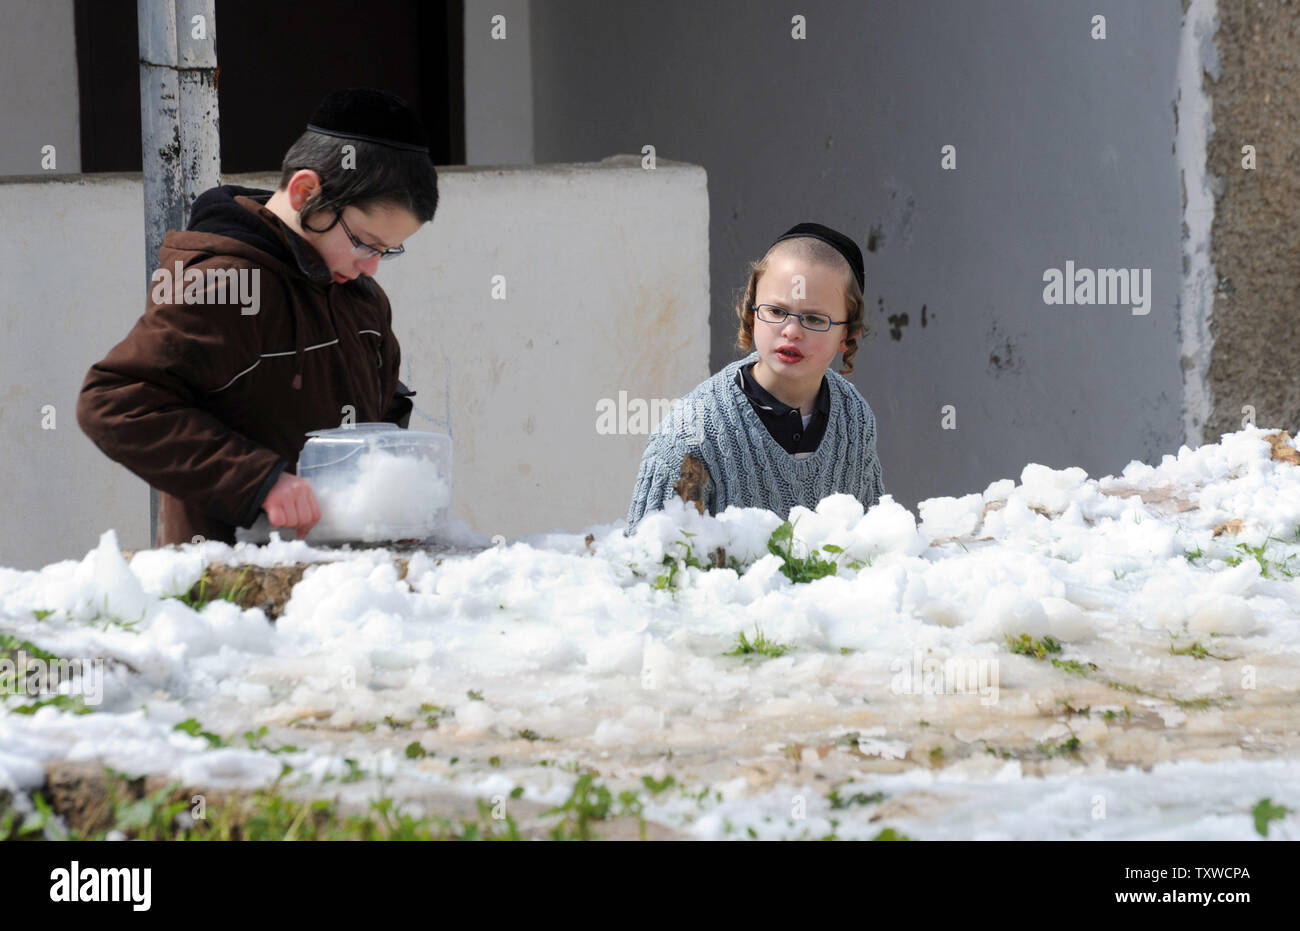 An Israeli boy collects snow in a plastic container after a rare winter snow storm in Jerusalem, March 2, 2012. Residents of Jerusalem woke to 1.575 inches of snow in the first snow fall in Jerusalem in more than two years.  UPI/Debbie Hill - Stock Image